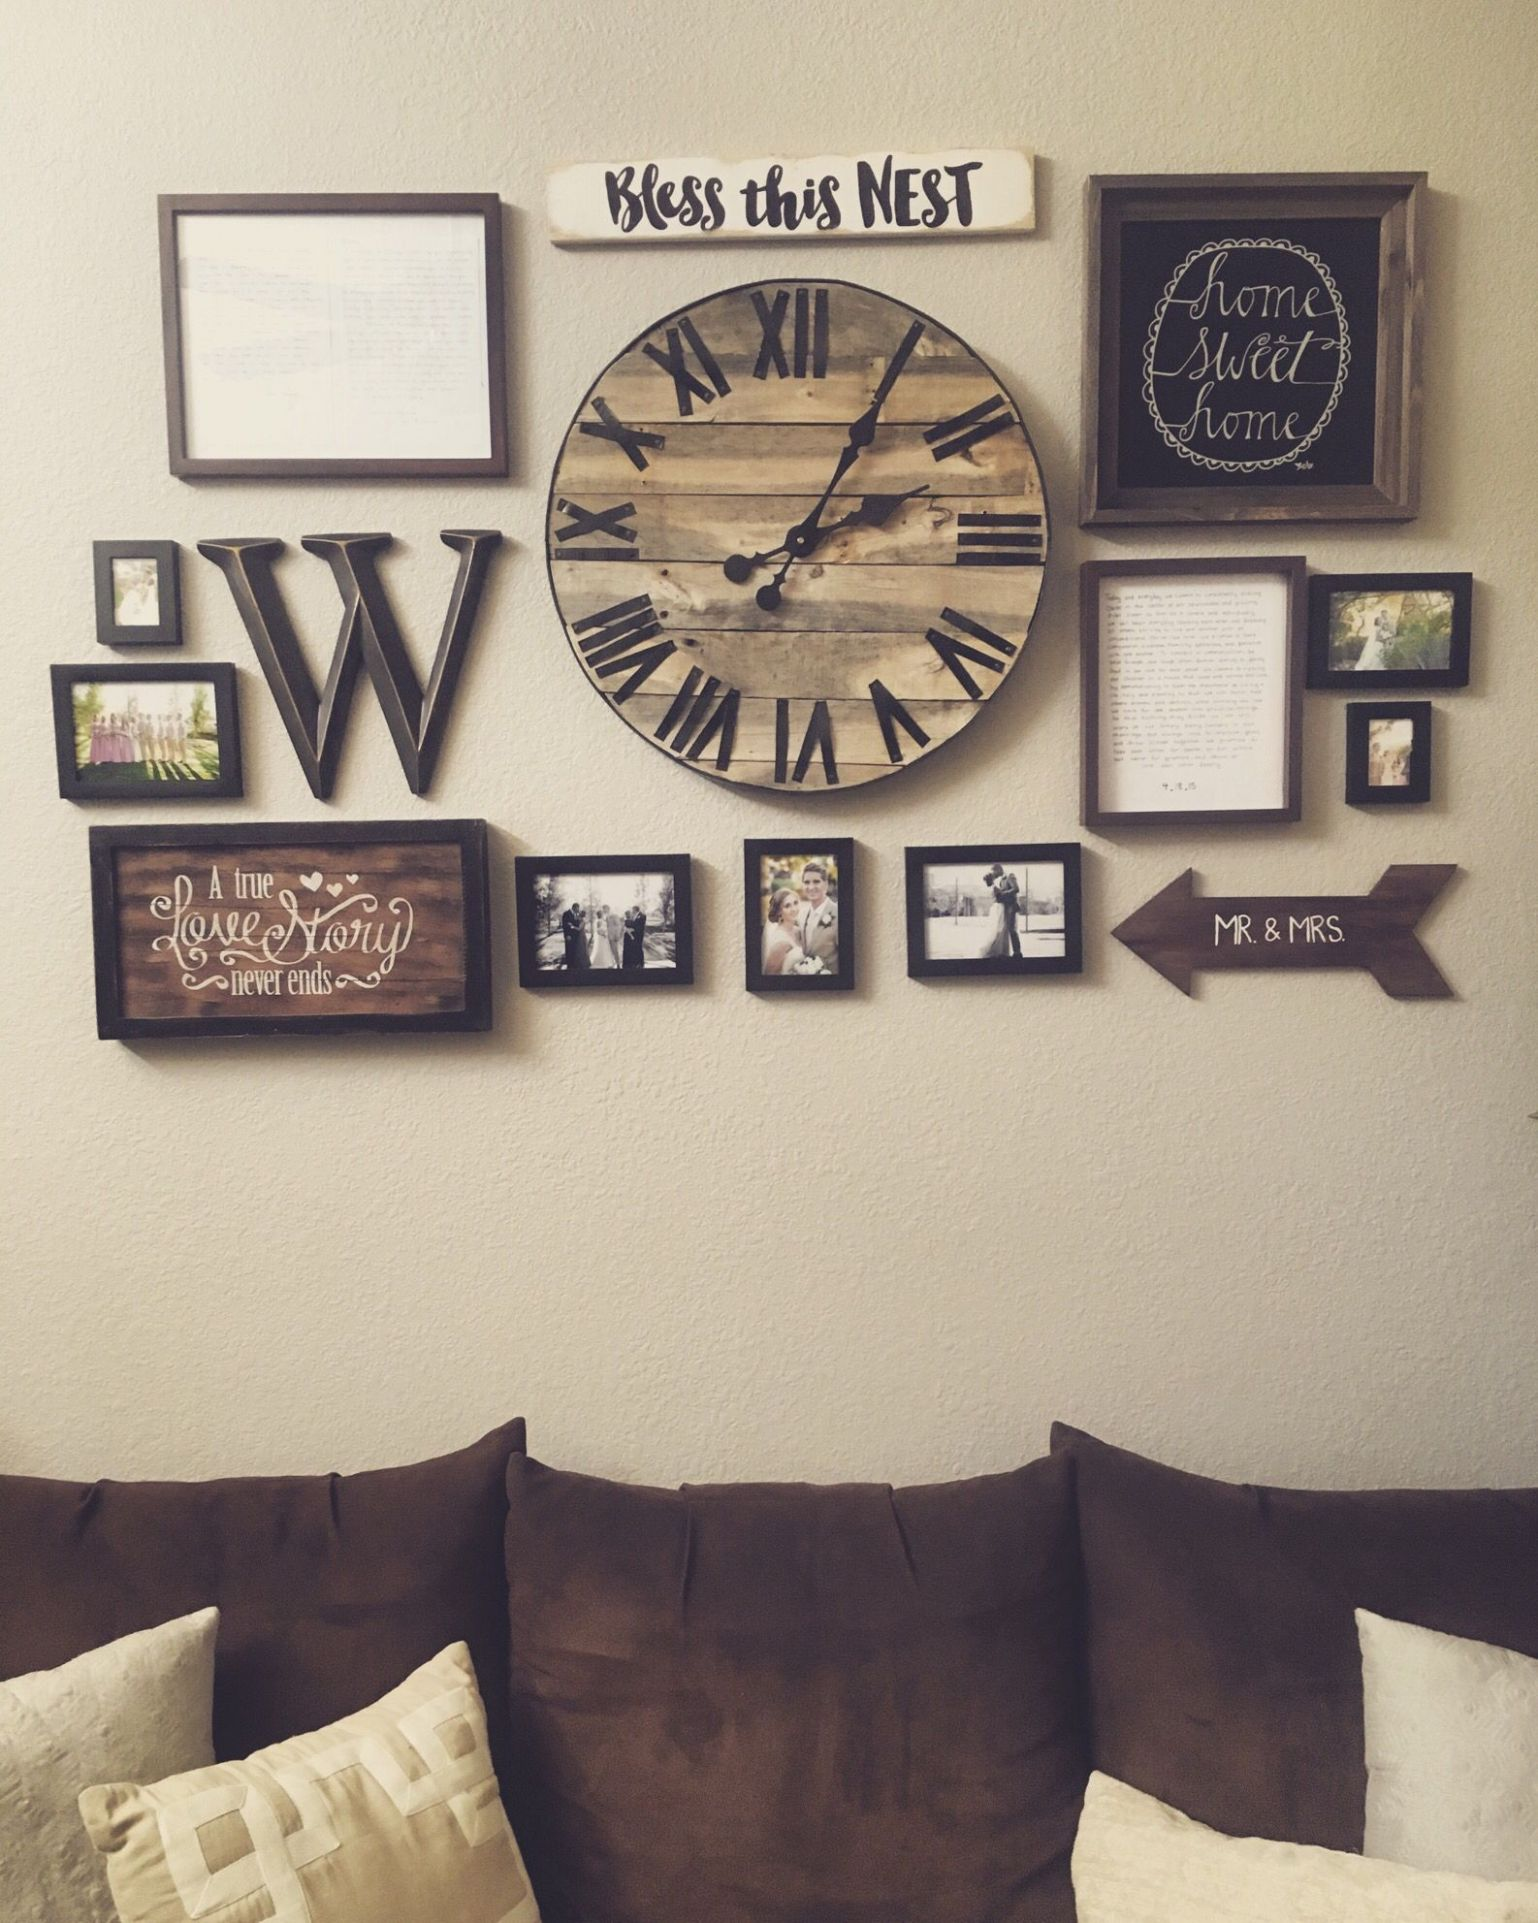 Gallery wall with handmade pallet clock (With images) | Wall decor ..